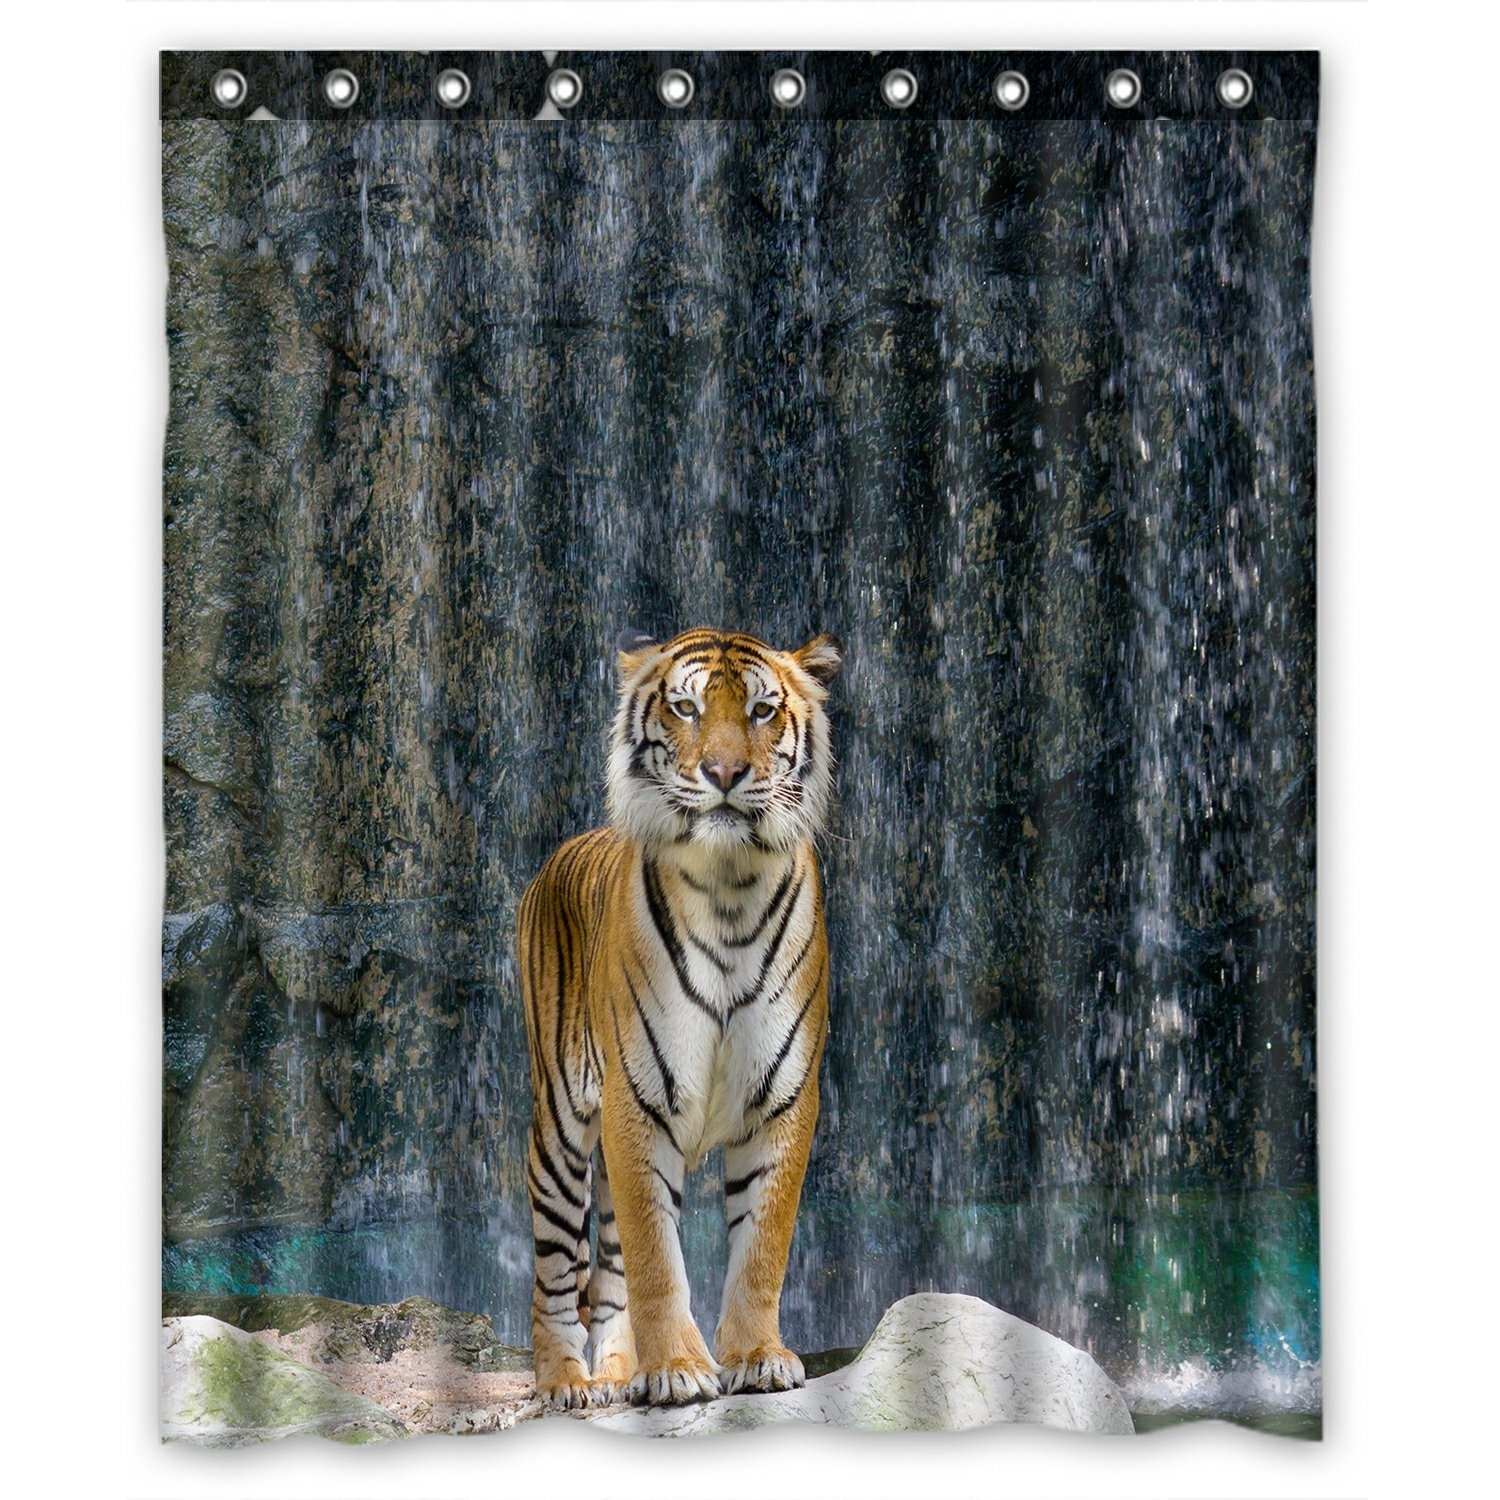 Animal Shower Curtain, Tiger Standing on the Rock near the waterfall mountain landscape Shower Curtain 60x72 inch